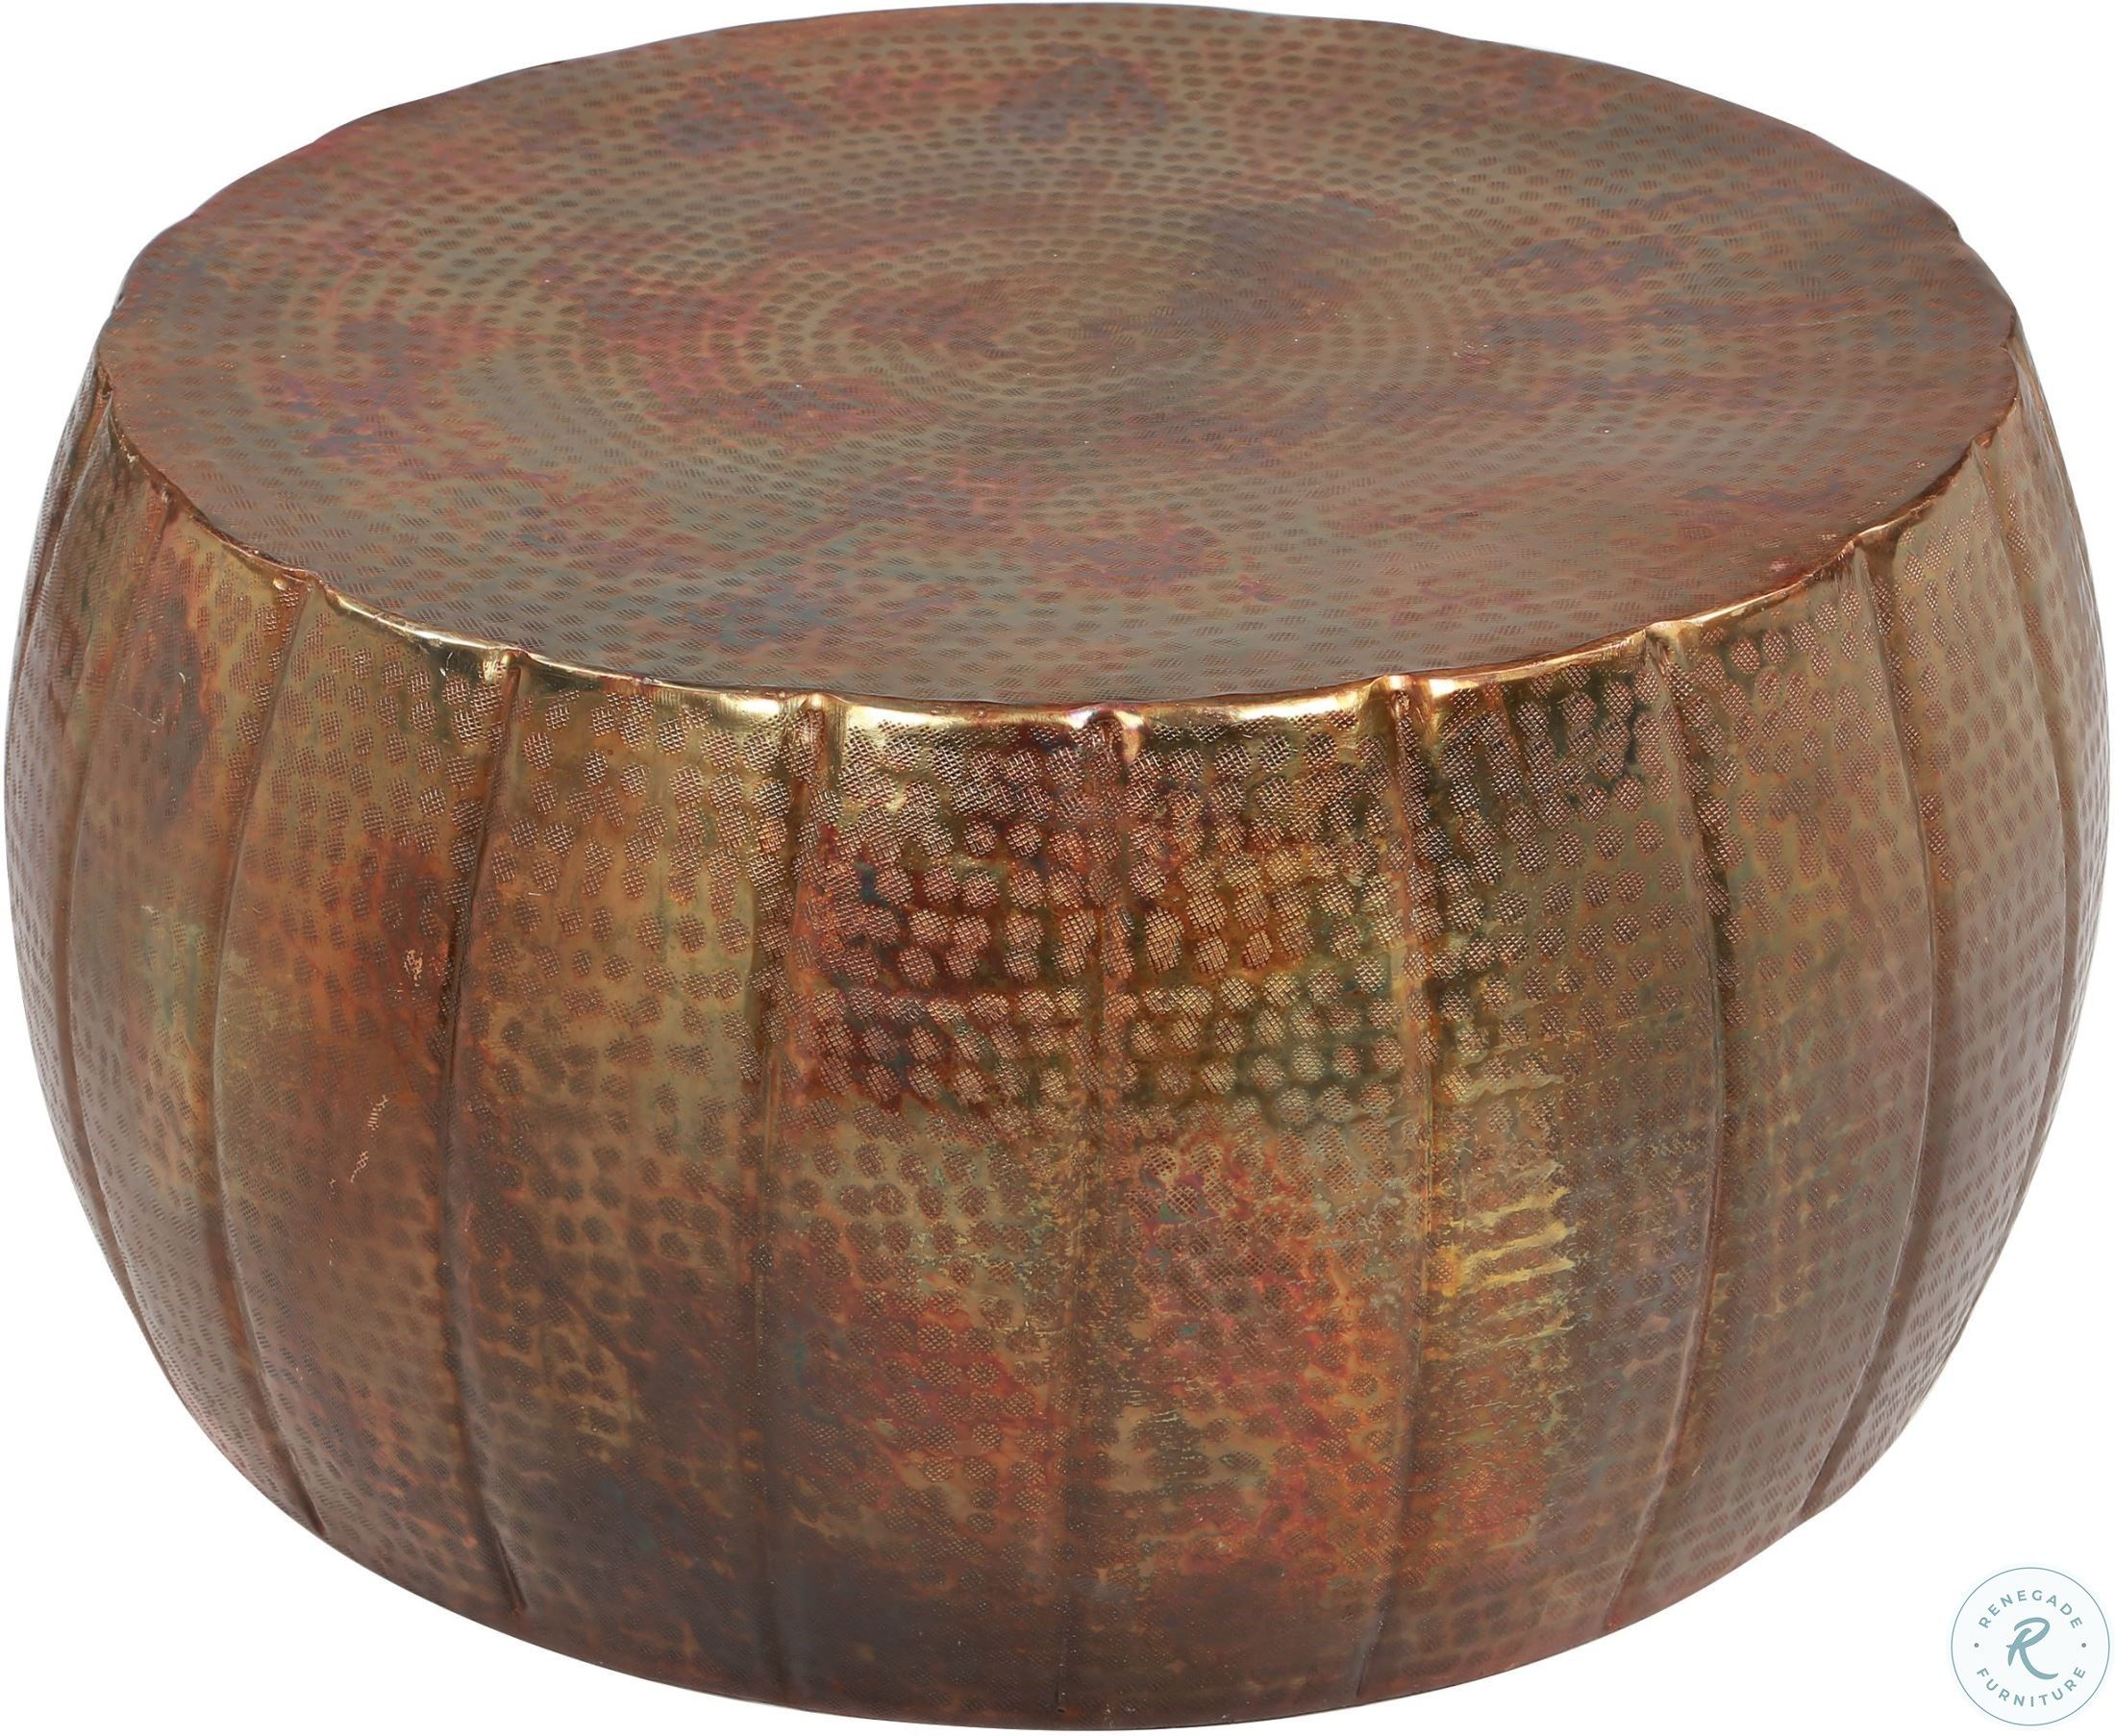 Gema Hammered Copper Drum Cocktail Table In 2021 Round Metal Coffee Table Copper Coffee Table Round Copper Coffee Table [ 1806 x 2200 Pixel ]